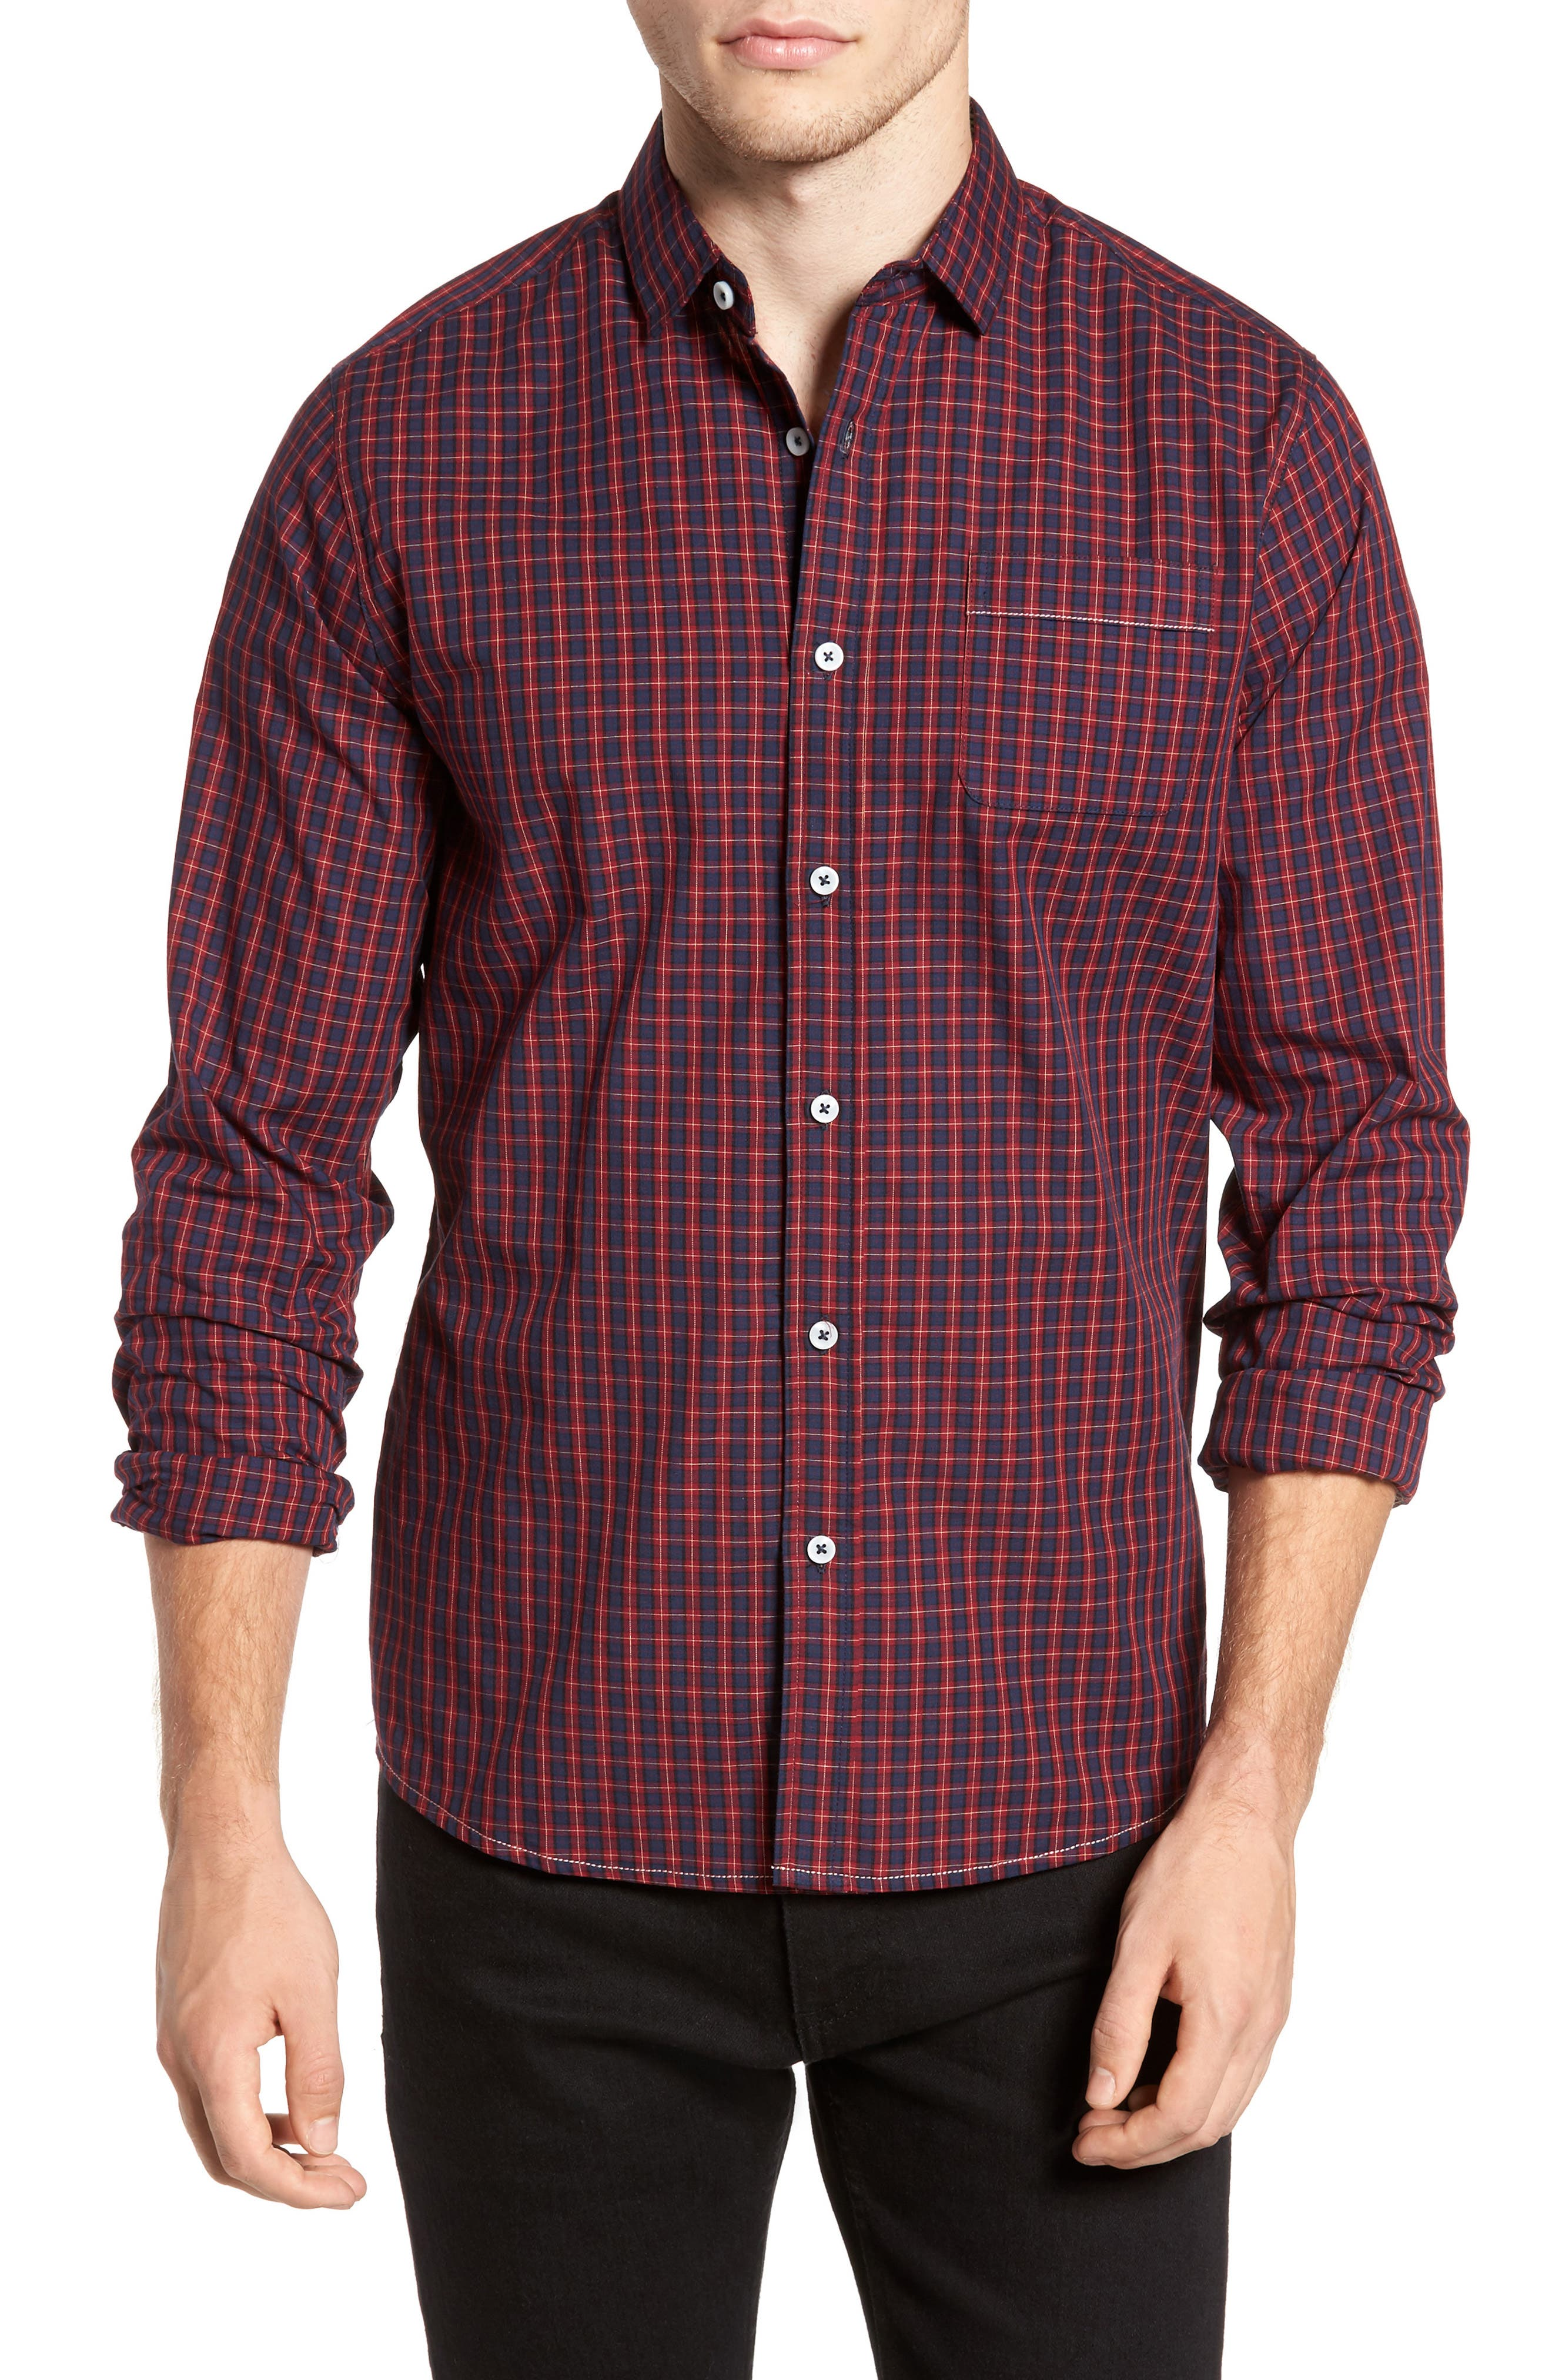 Main Image - Descendant of Thieves Tinto Plaid Woven Shirt